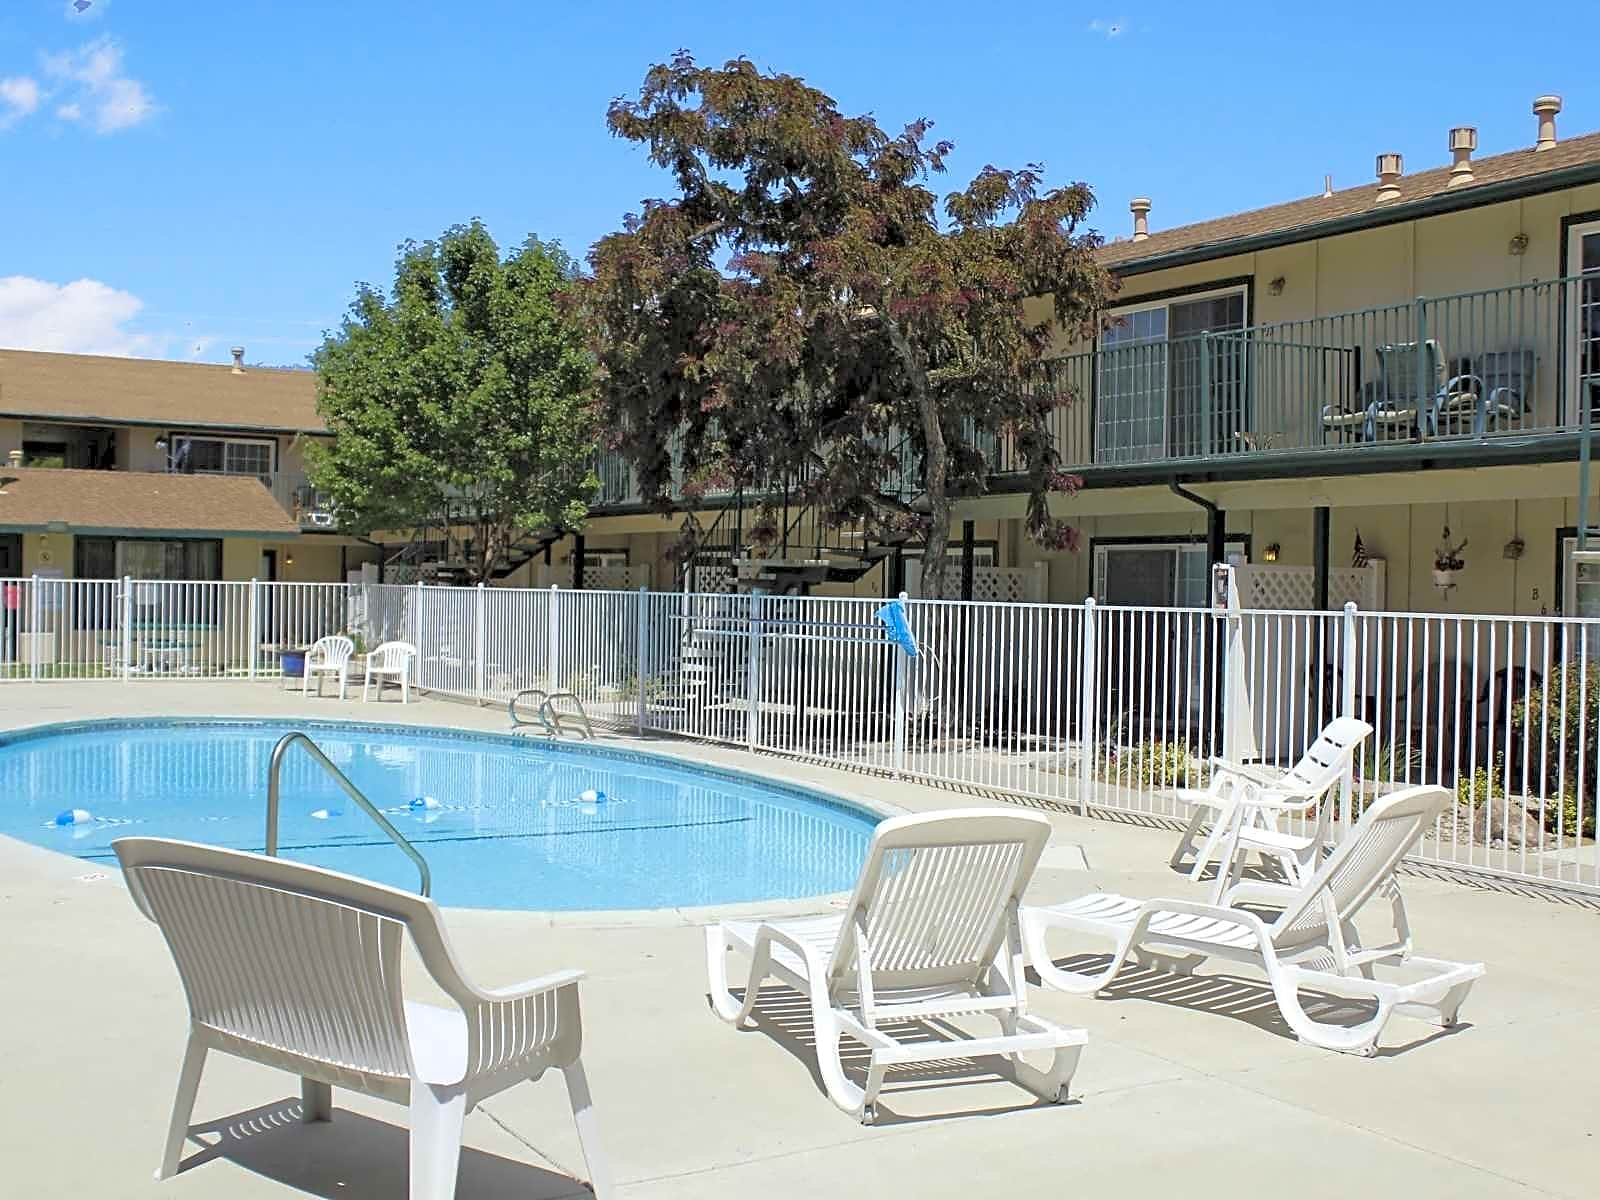 Photo: Reno Apartment for Rent - $630.00 / month; 1 Bd & 1 Ba